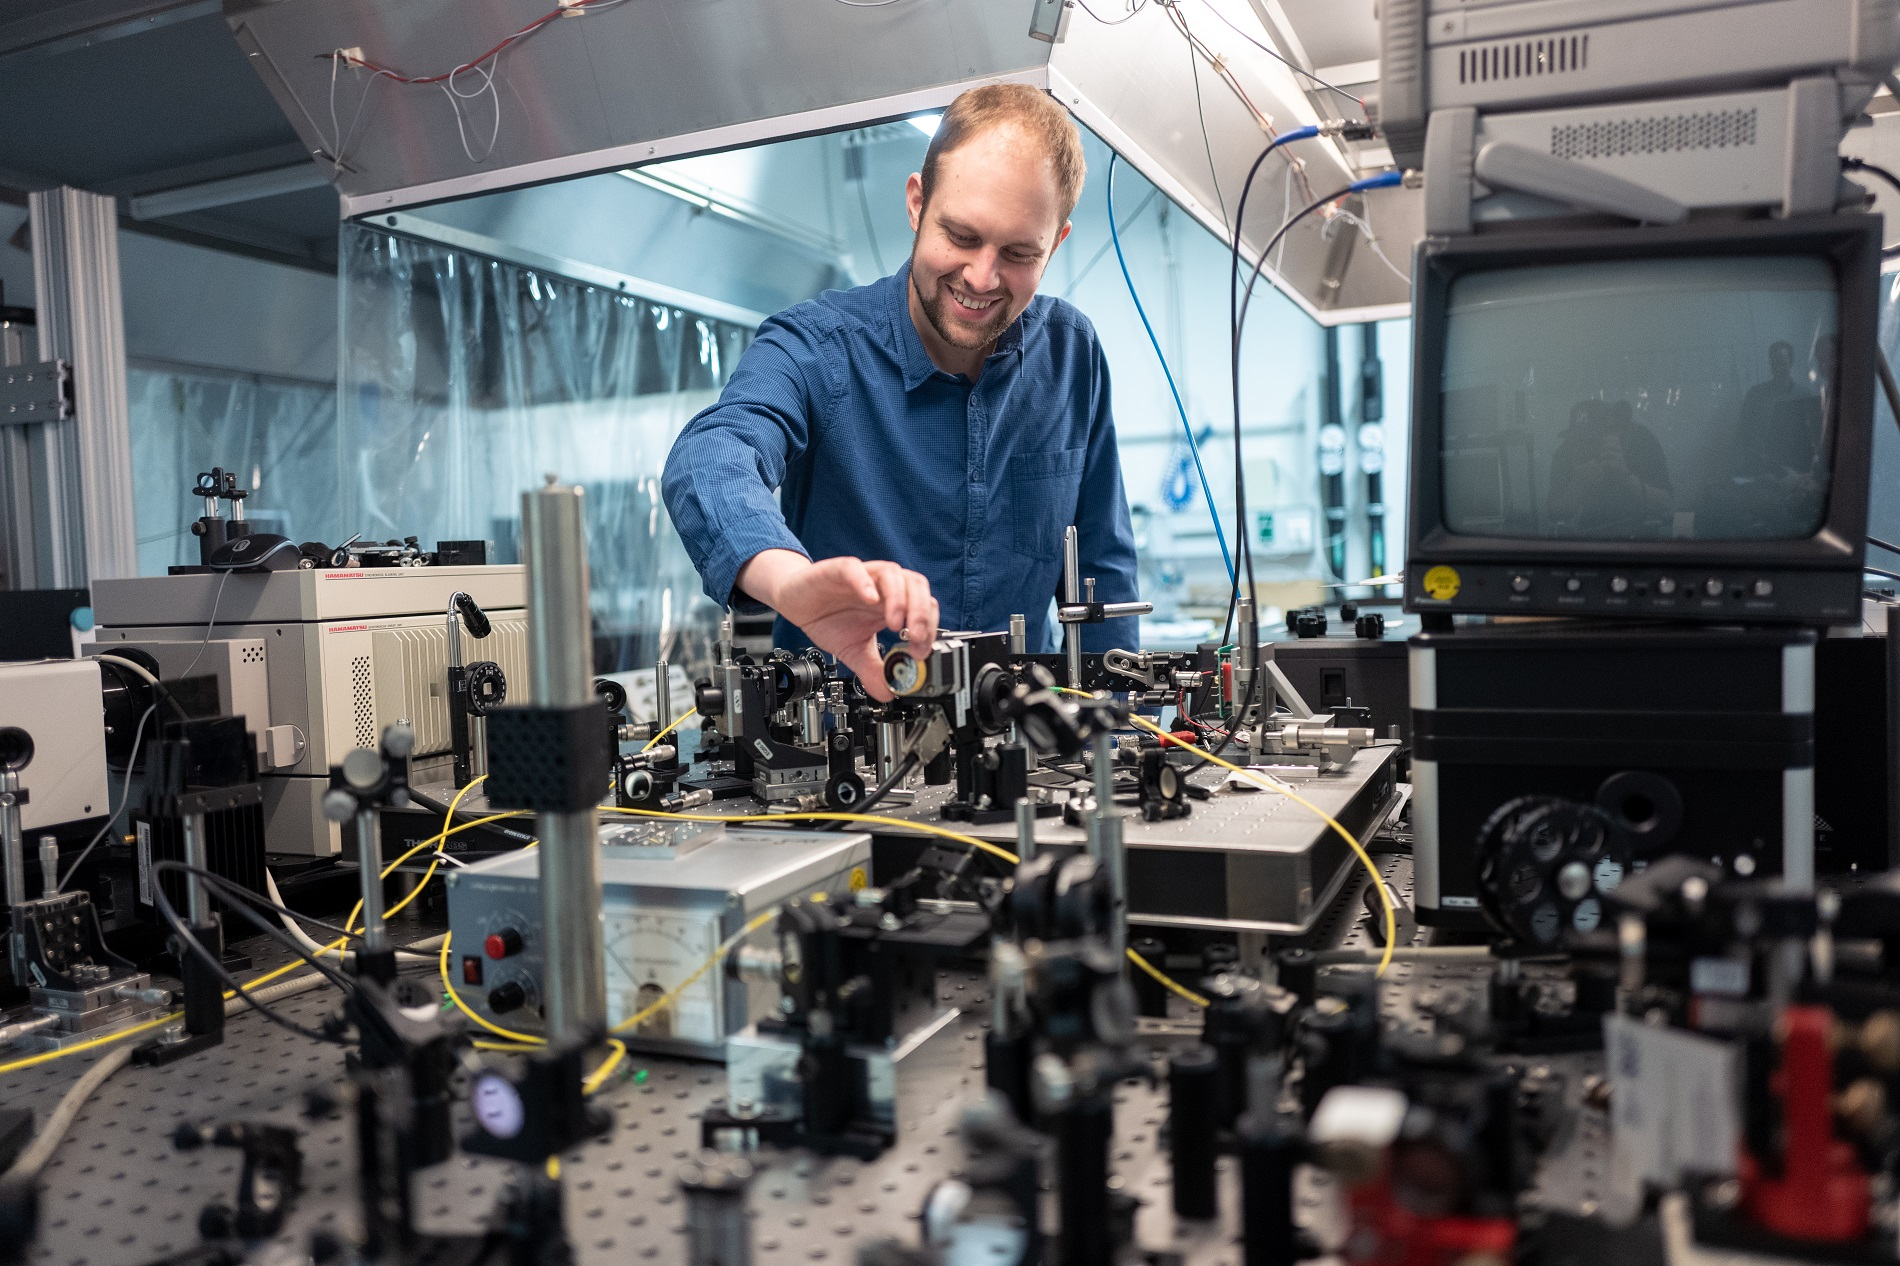 Markus Lindemann is working on the development of ultrafast spin lasers as part of his doctoral thesis.